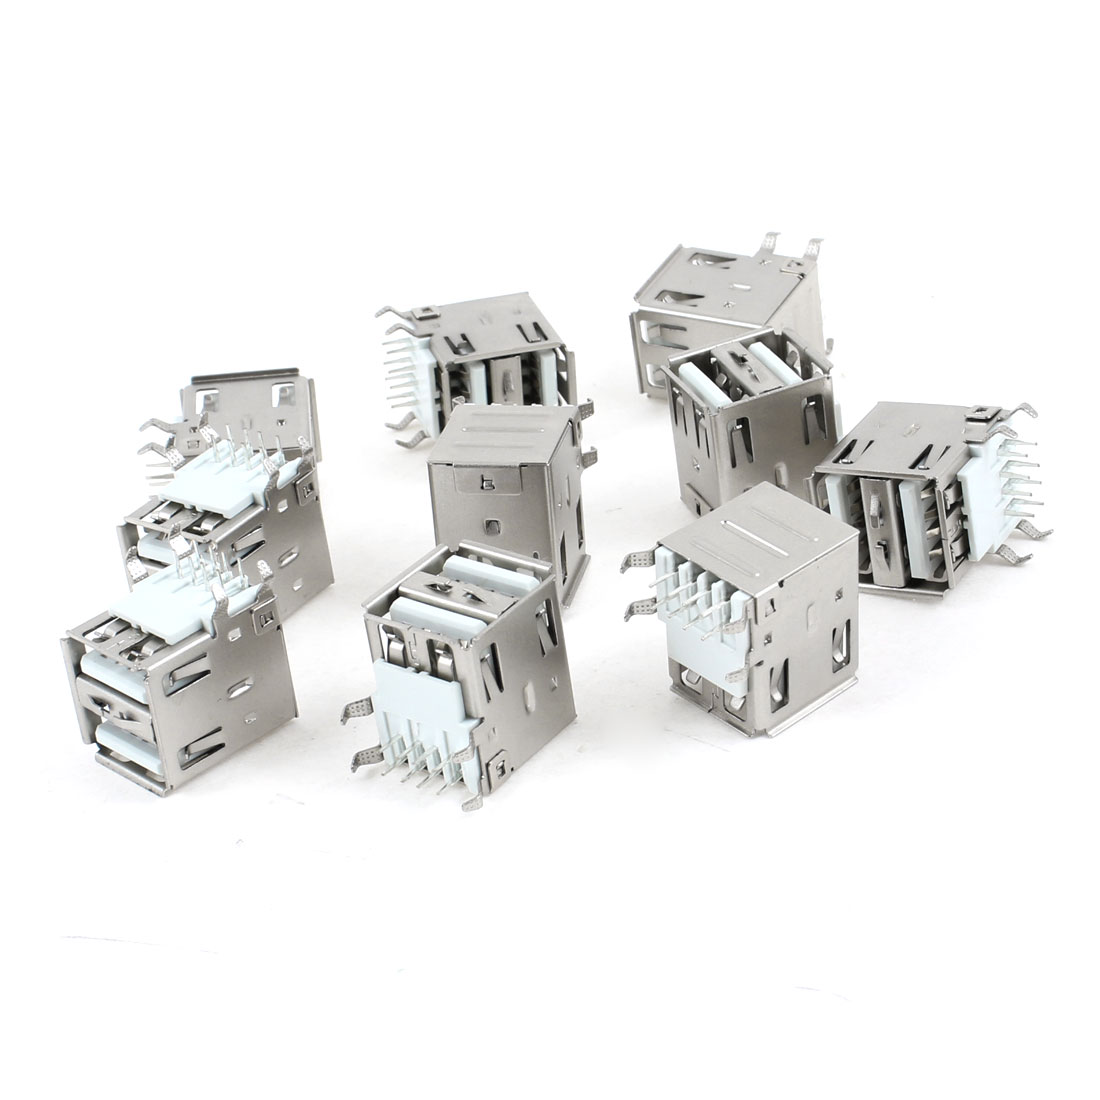 10 Pcs Double Layer USB Type A Right Angle DIP 8-Pin Female Jack Socket